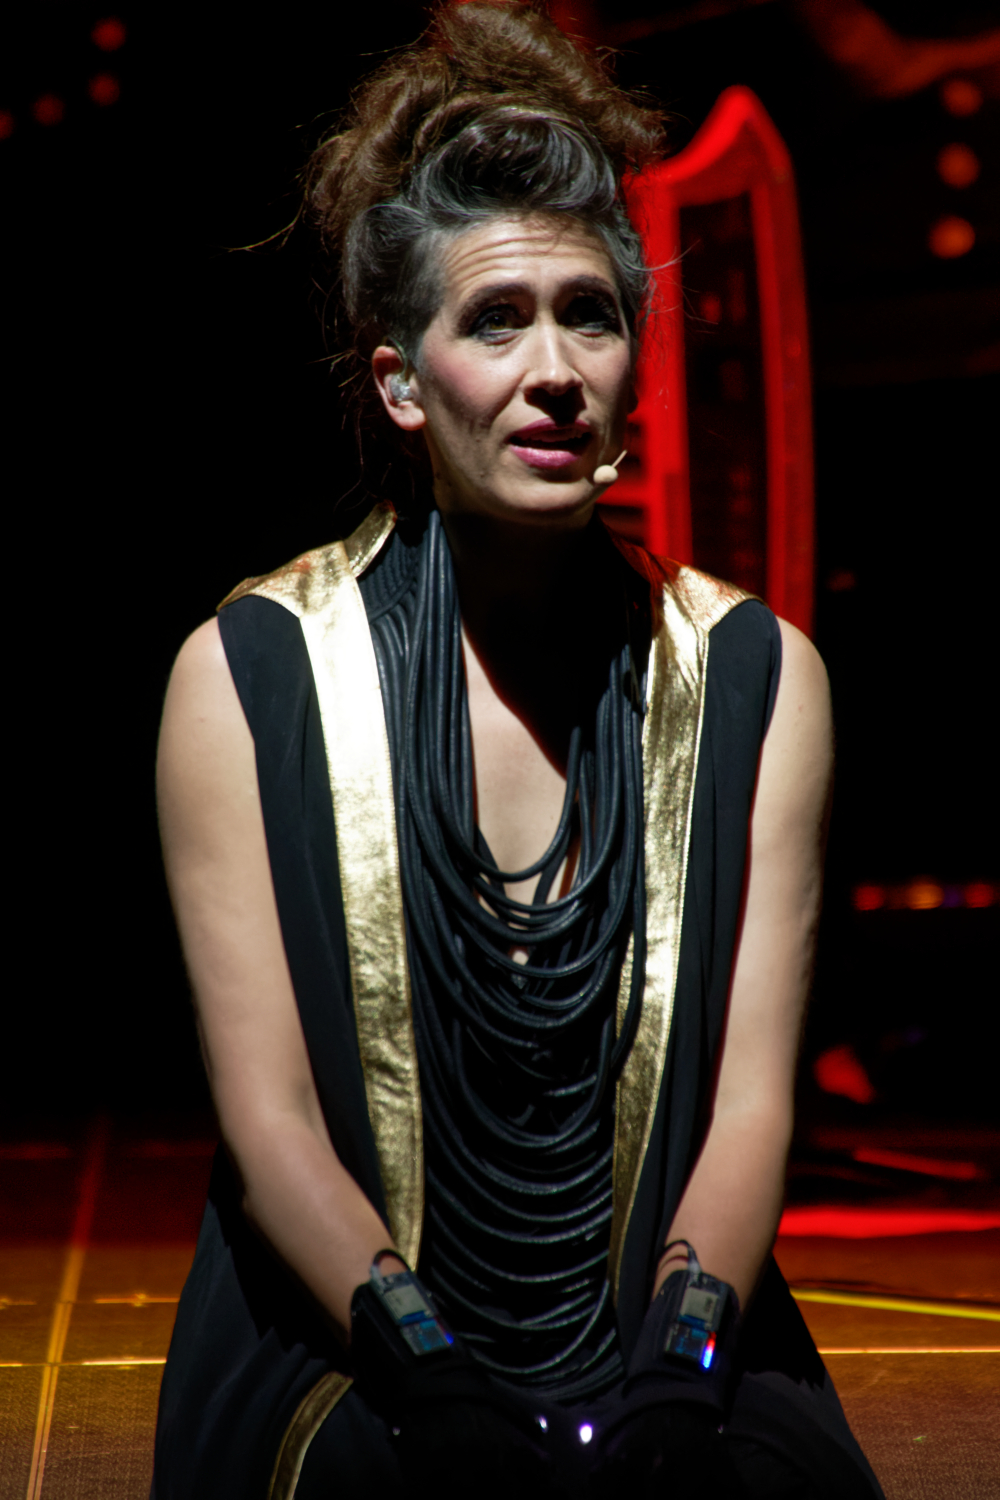 20190608 054 The Masonic - Imogen Heap.jpg